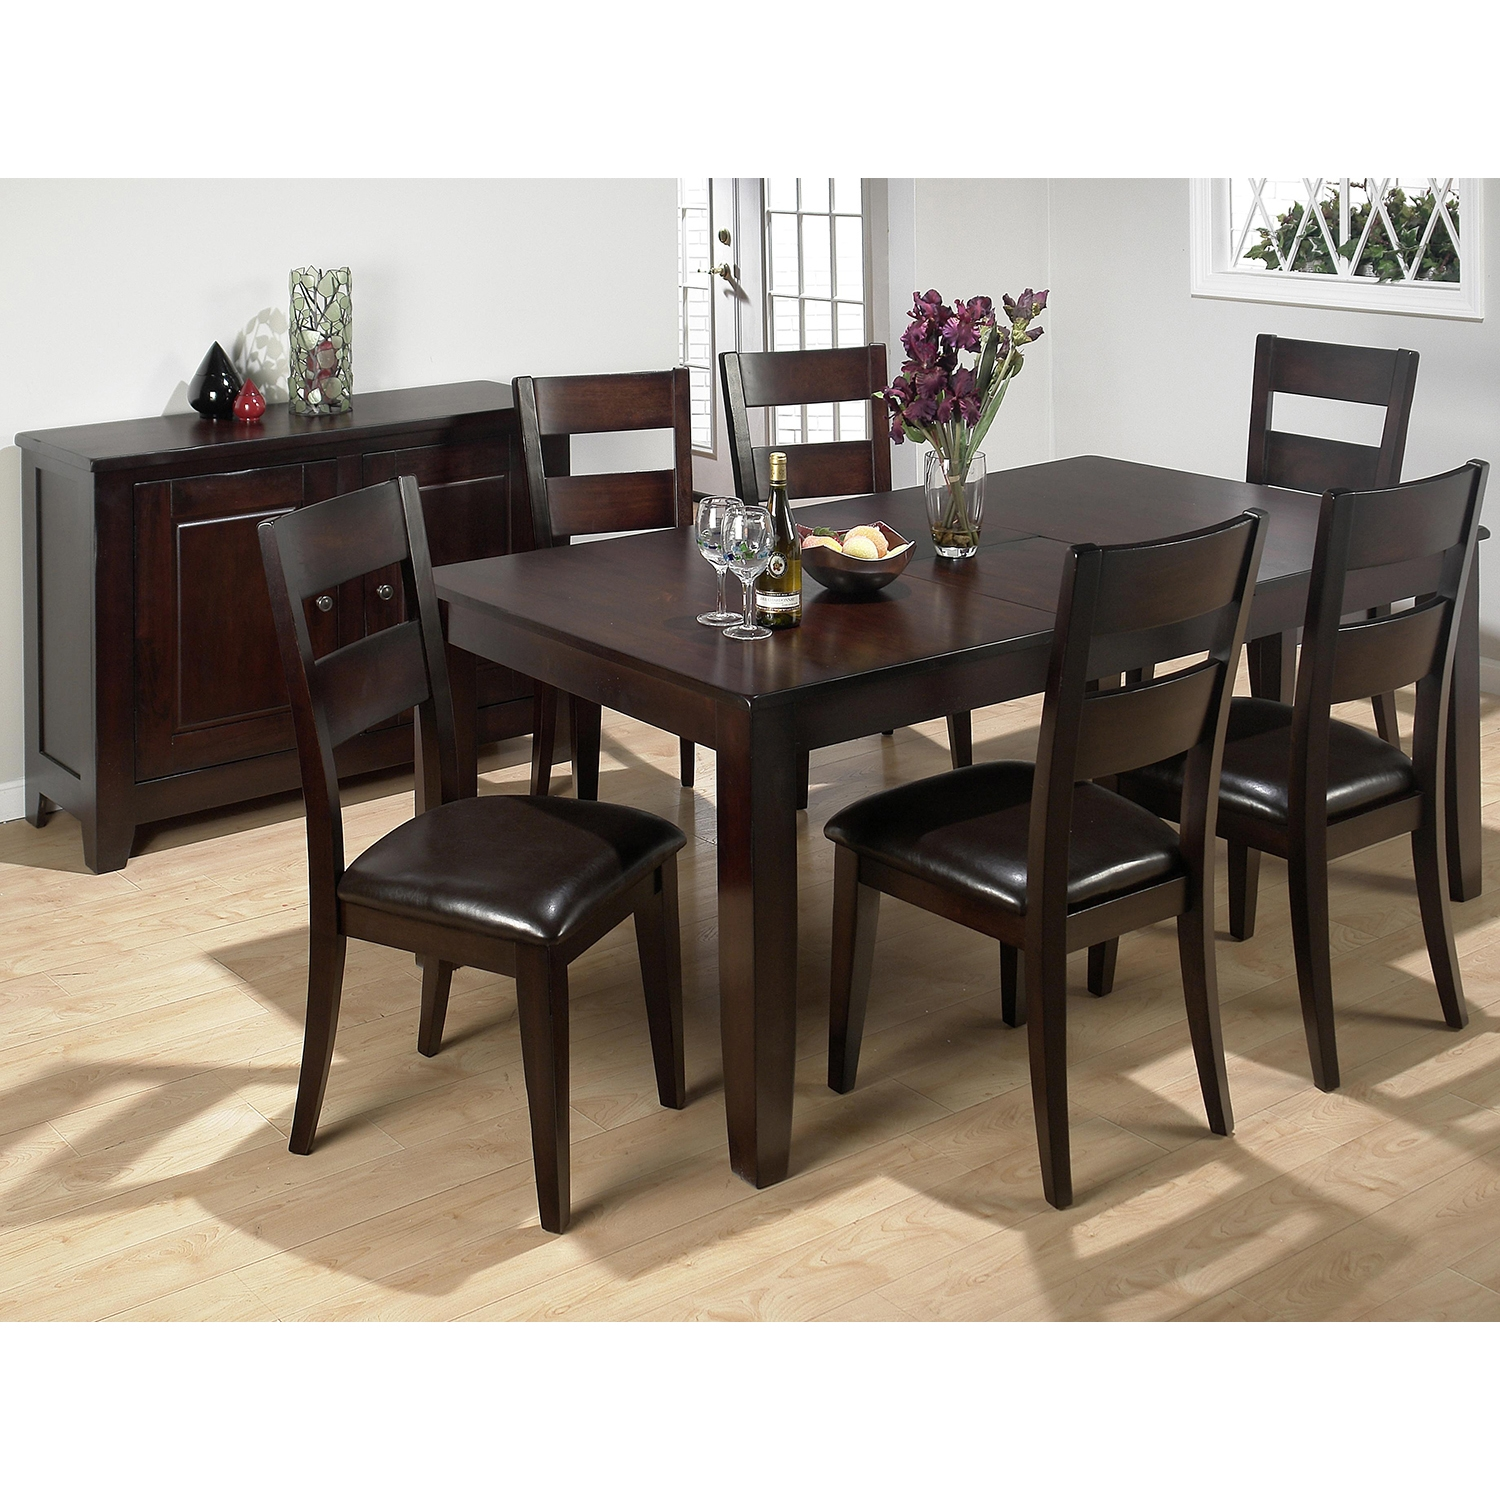 Dark Rustic Prairie Rectangular Dining Table with Butterfly Leaf - JOFR-972-77